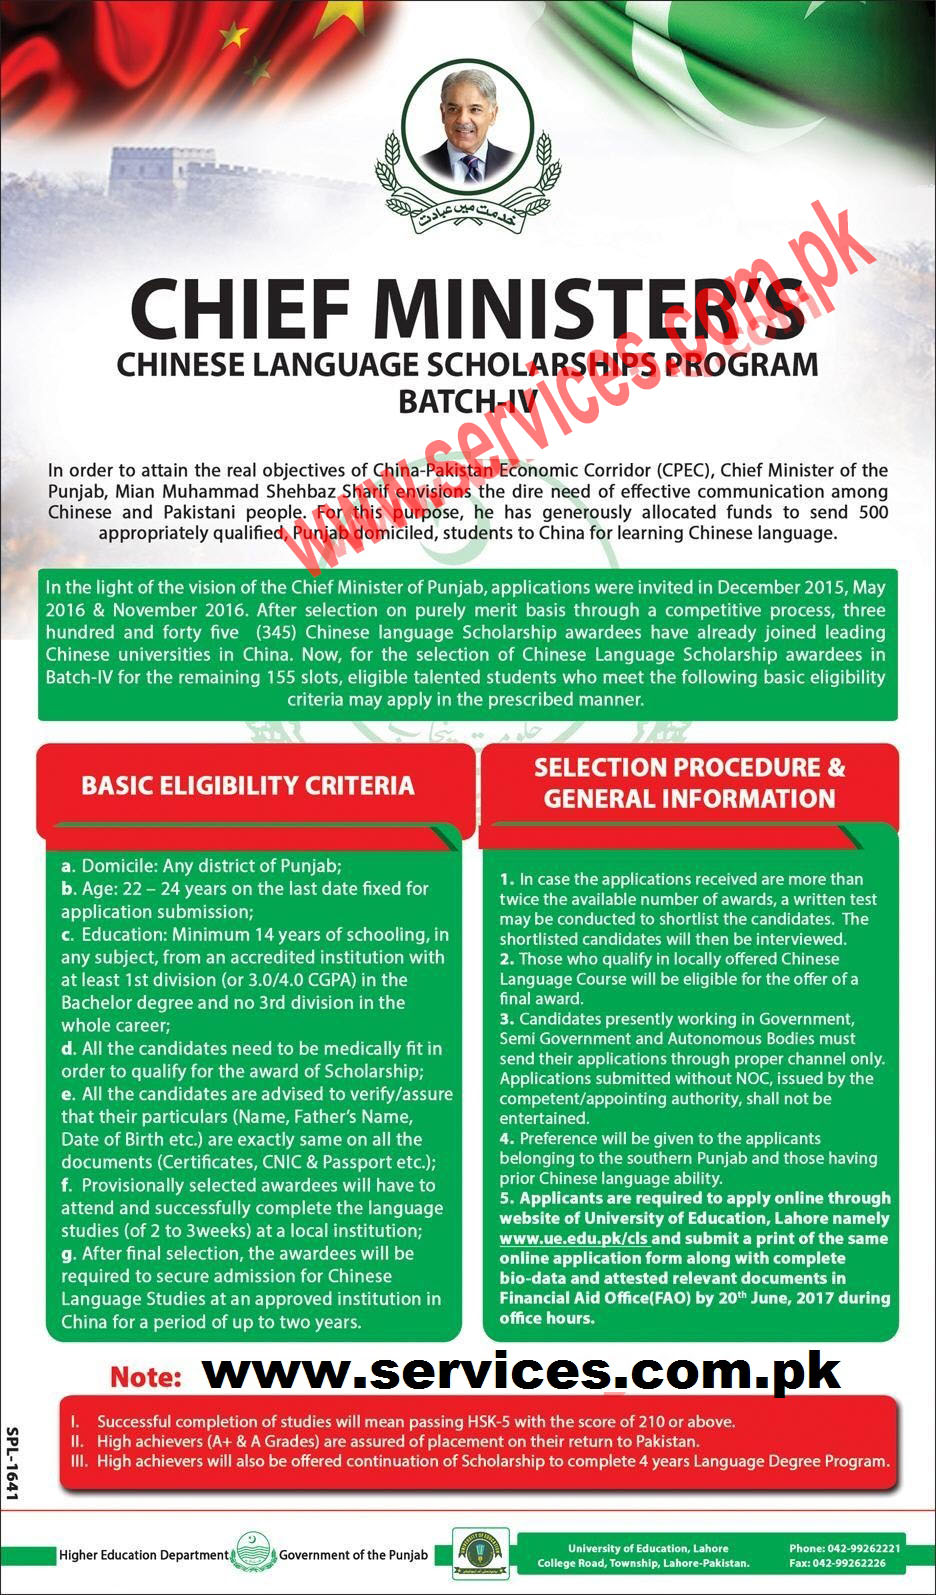 Apply Online Punjab Chief Minister's Chinese Language Scholarship 2017 Batch IV